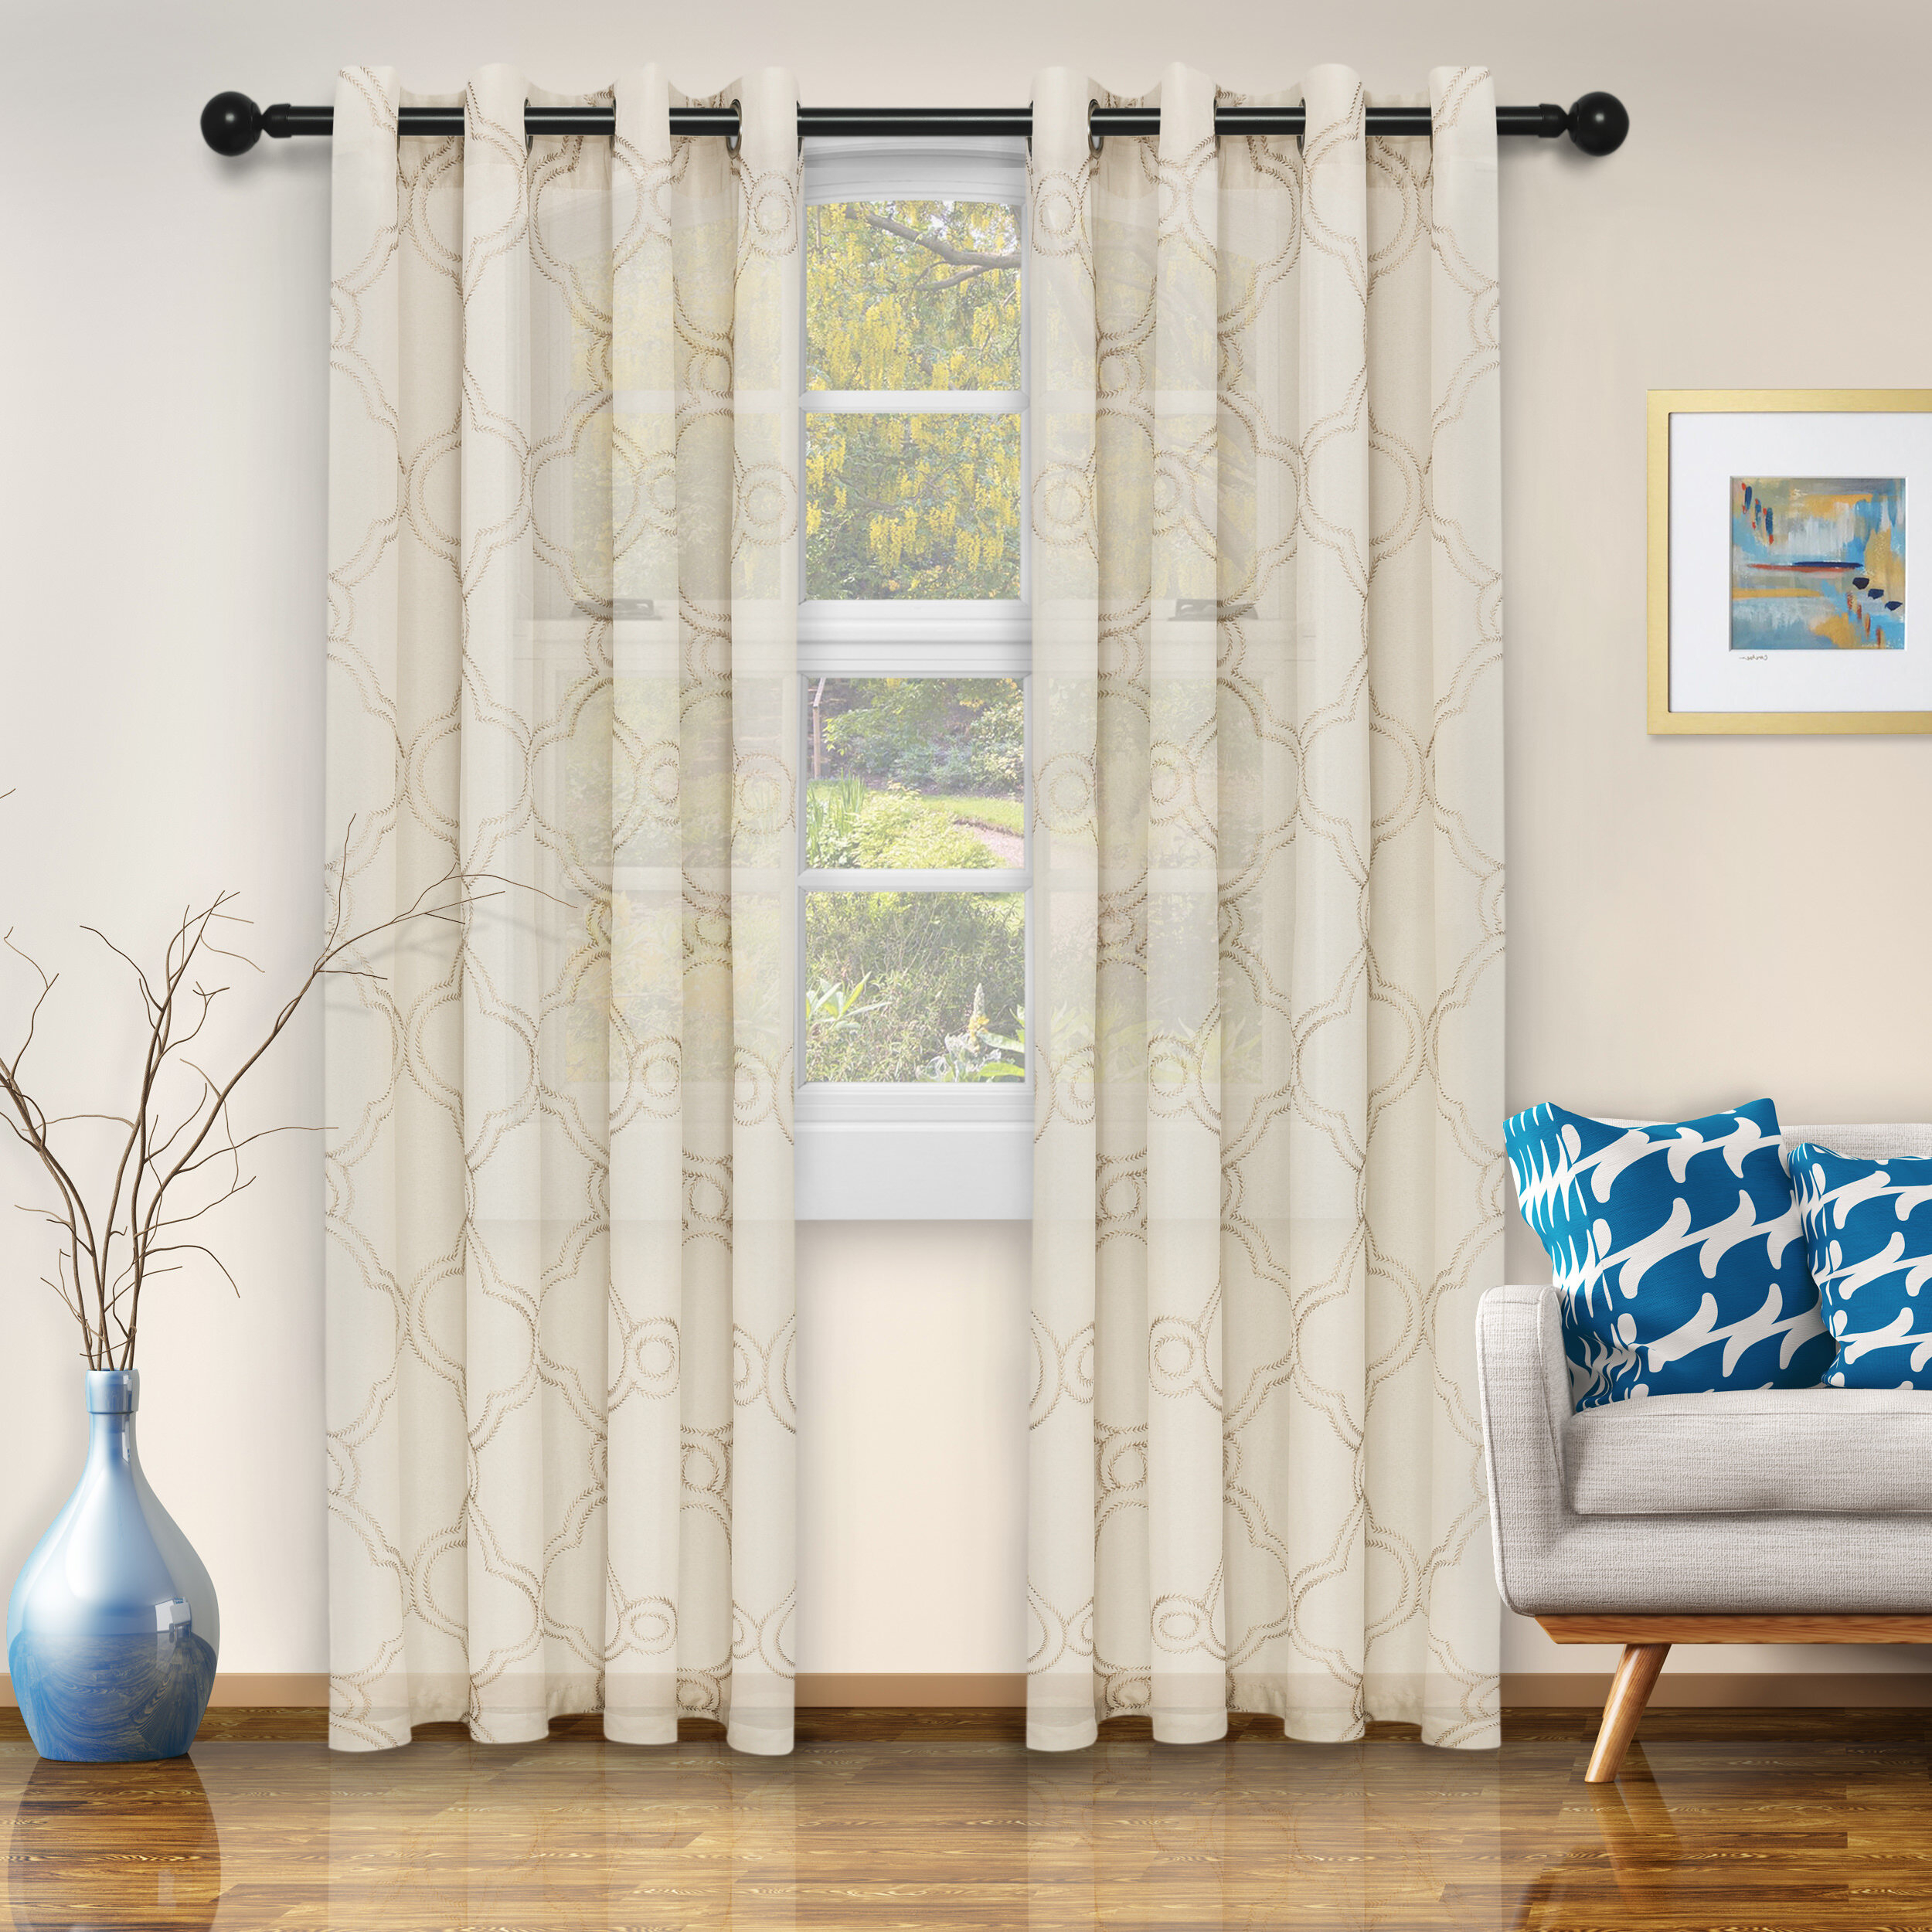 Abarca Moroccan Printed Semi Sheer Grommet Panel Pair Inside Wavy Leaves Embroidered Sheer Extra Wide Grommet Curtain Panels (View 23 of 30)